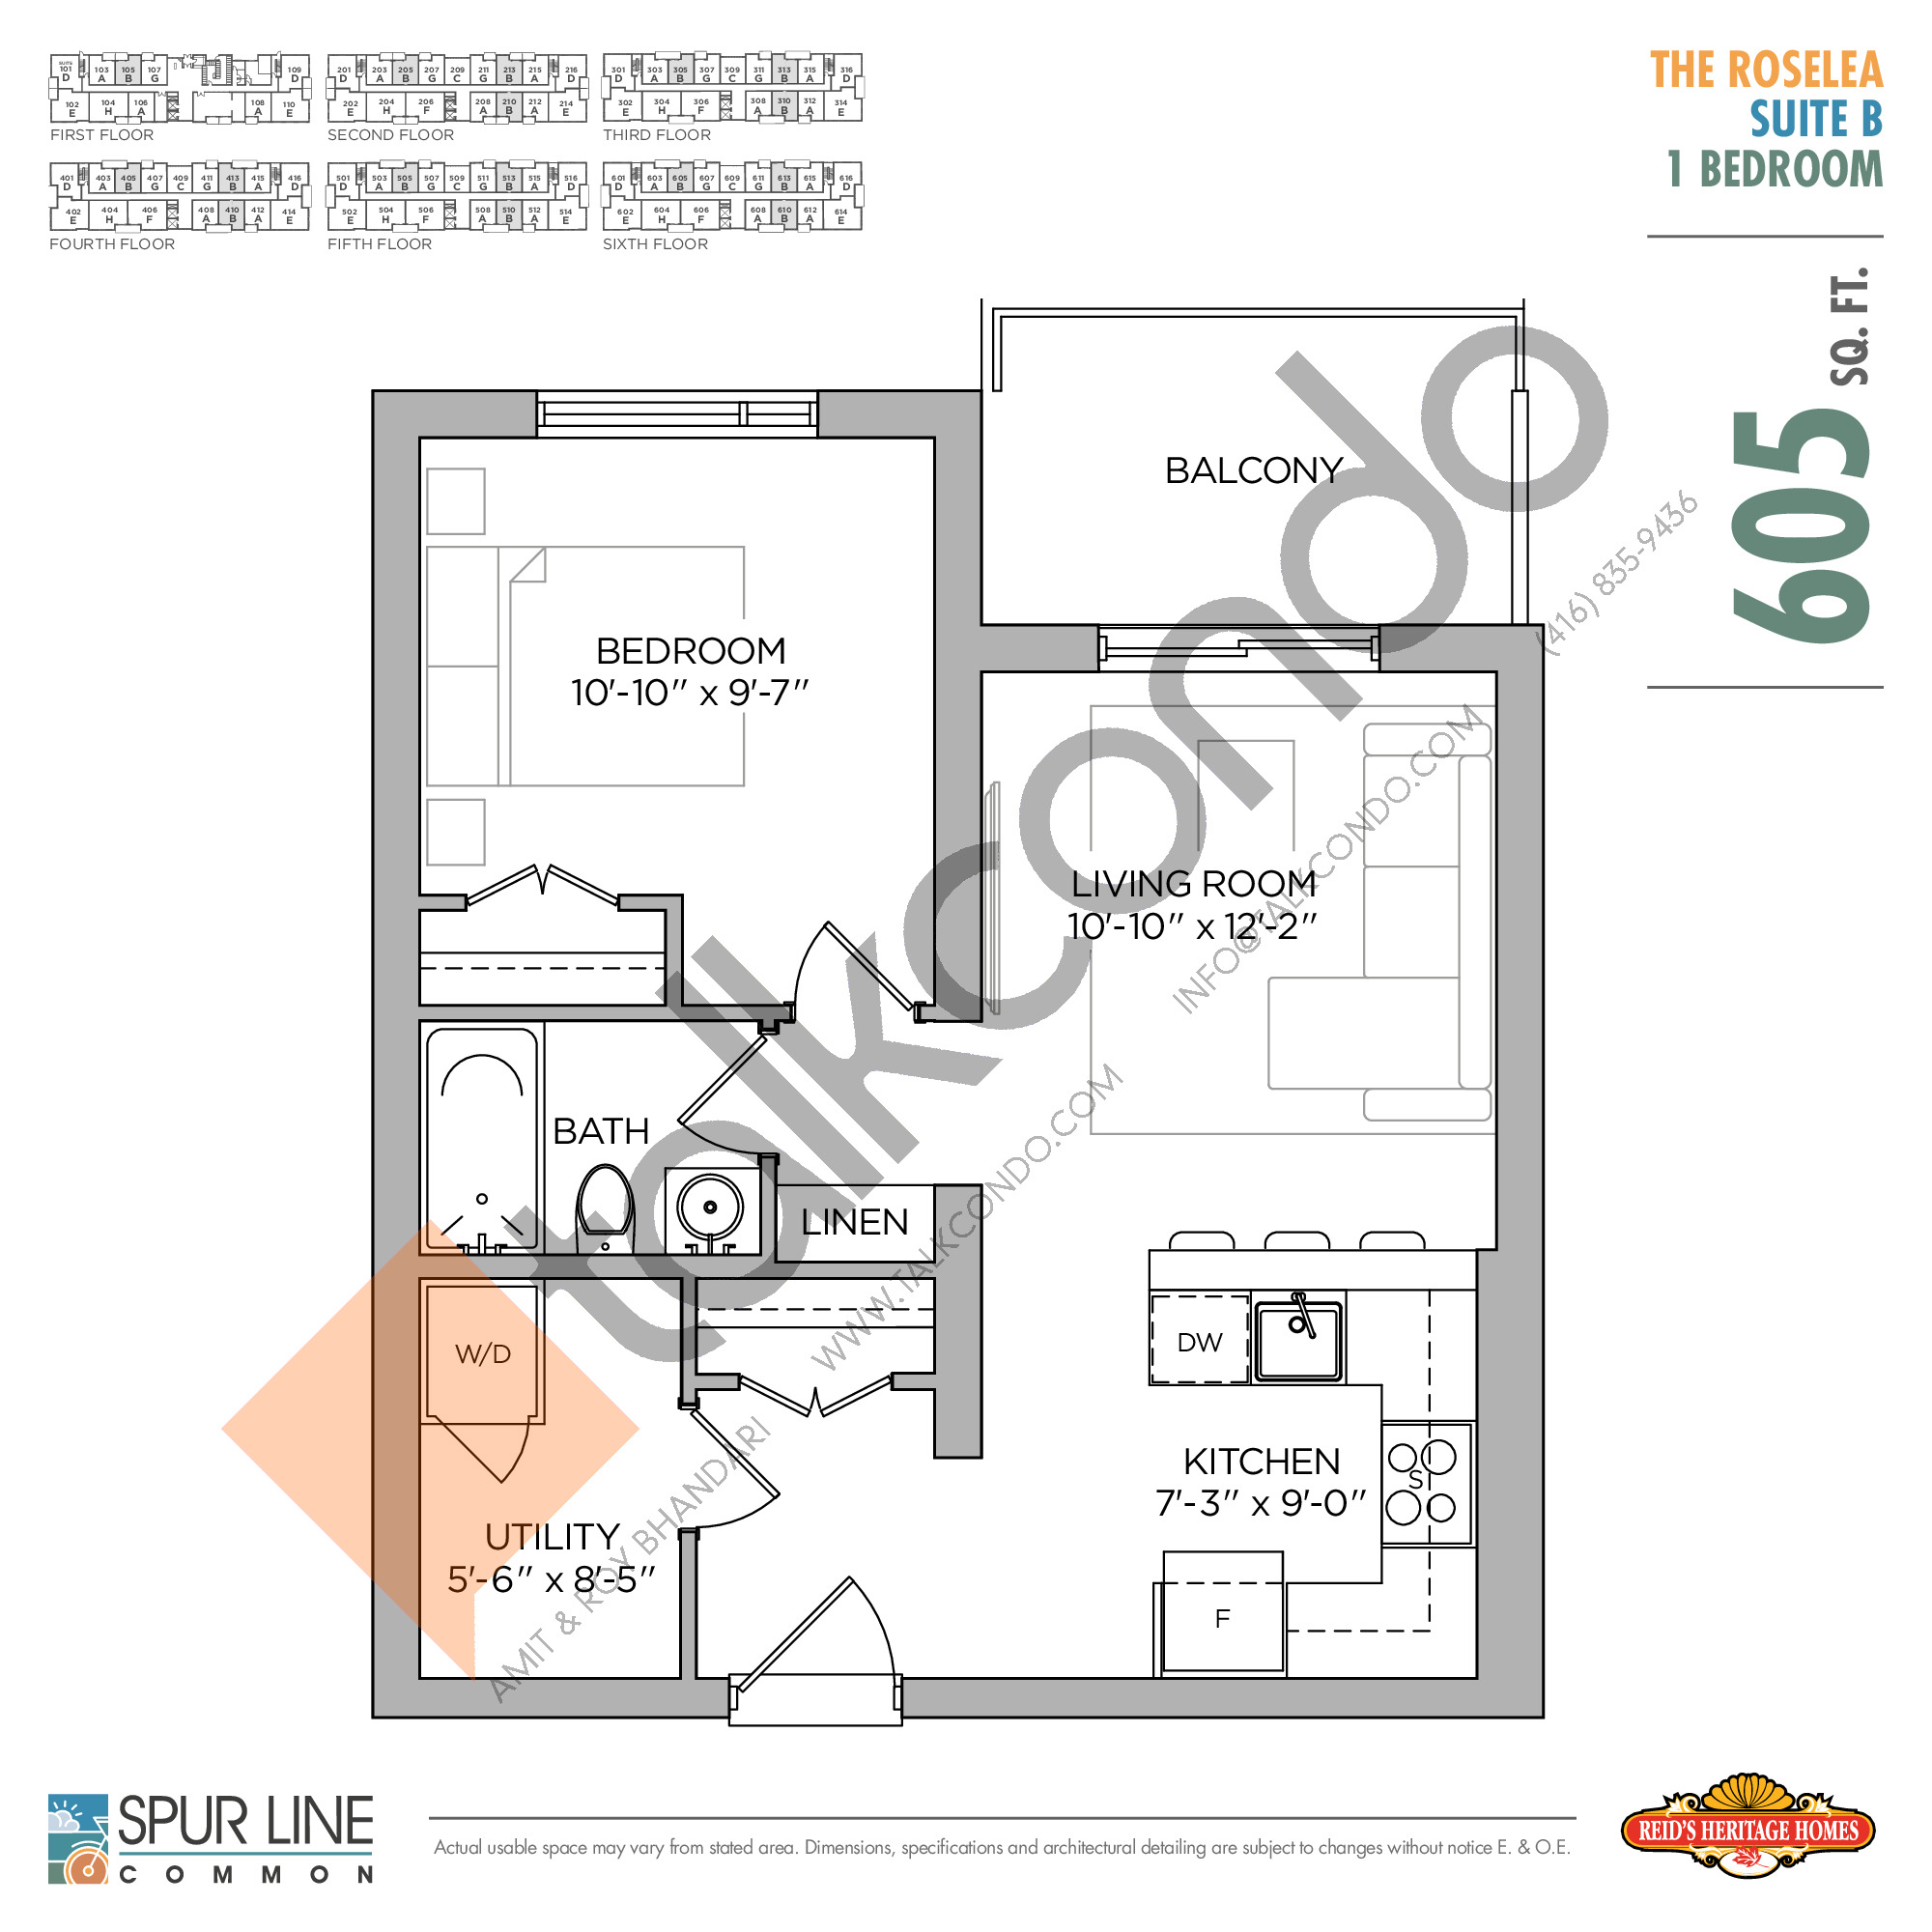 The Roselea Floor Plan at Spur Line Common Condos - 605 sq.ft